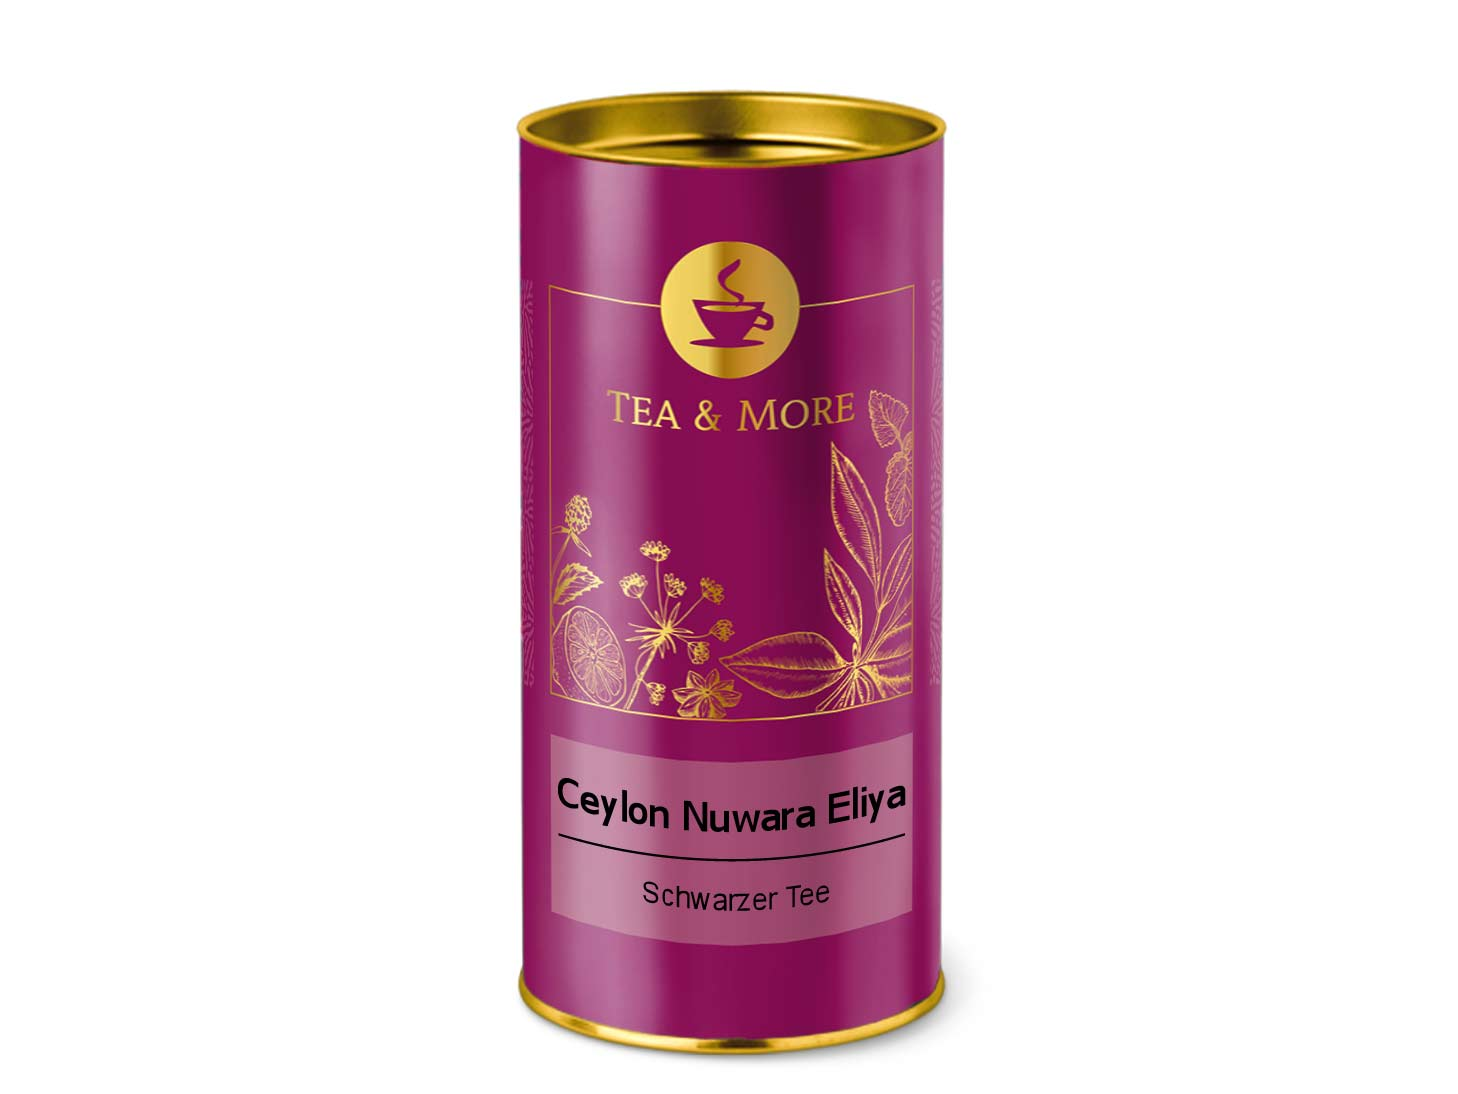 Ceylon Nuwara Eliya (highgrown)